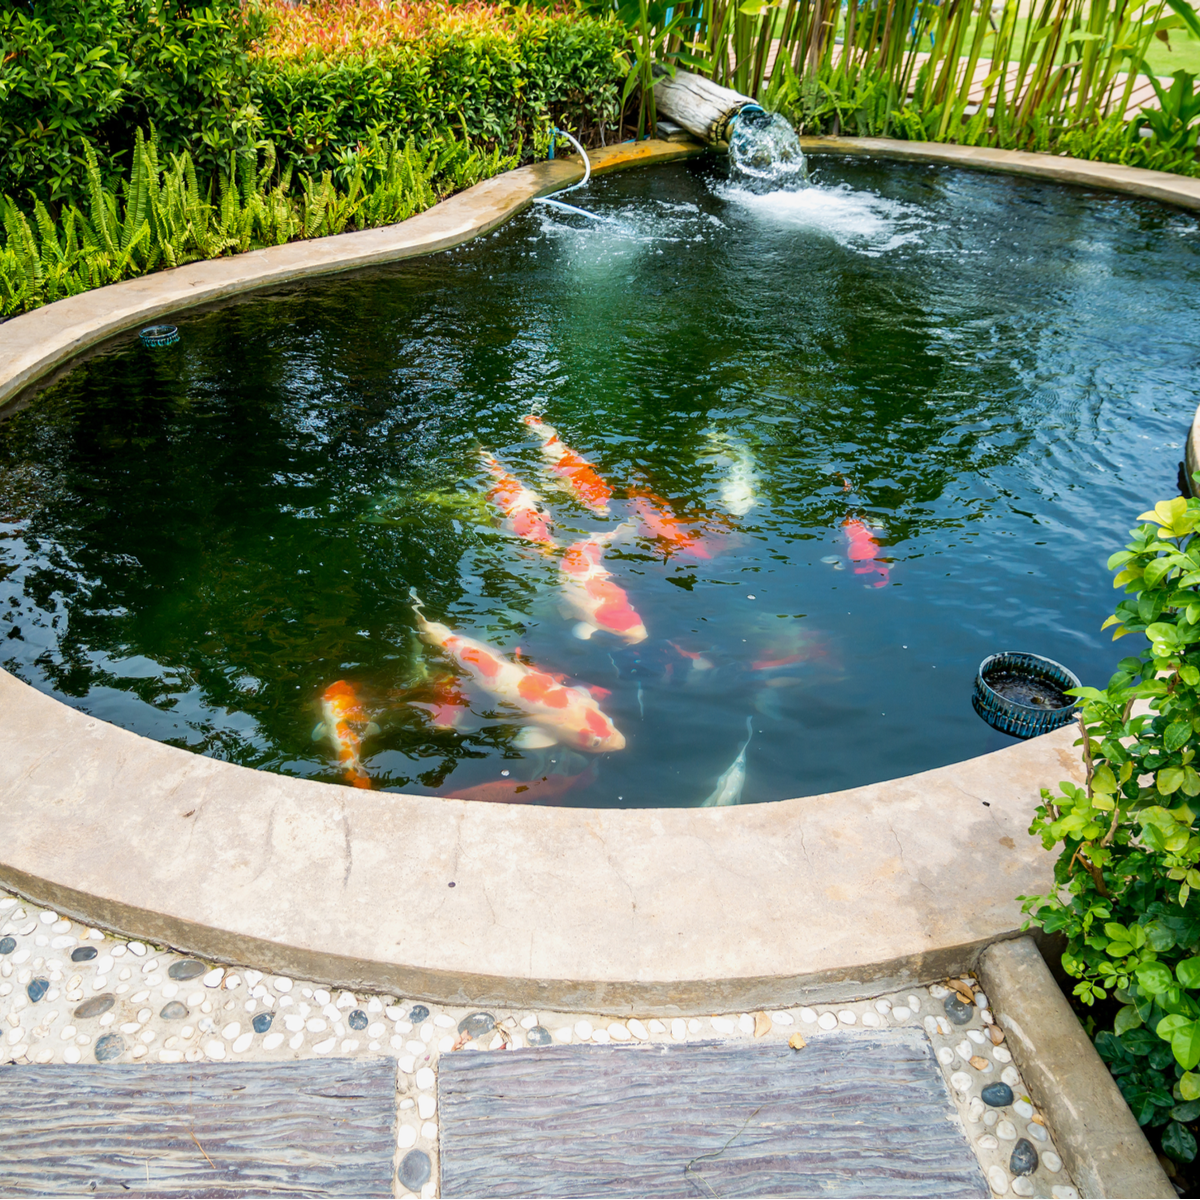 How much does it cost to remove a pond?